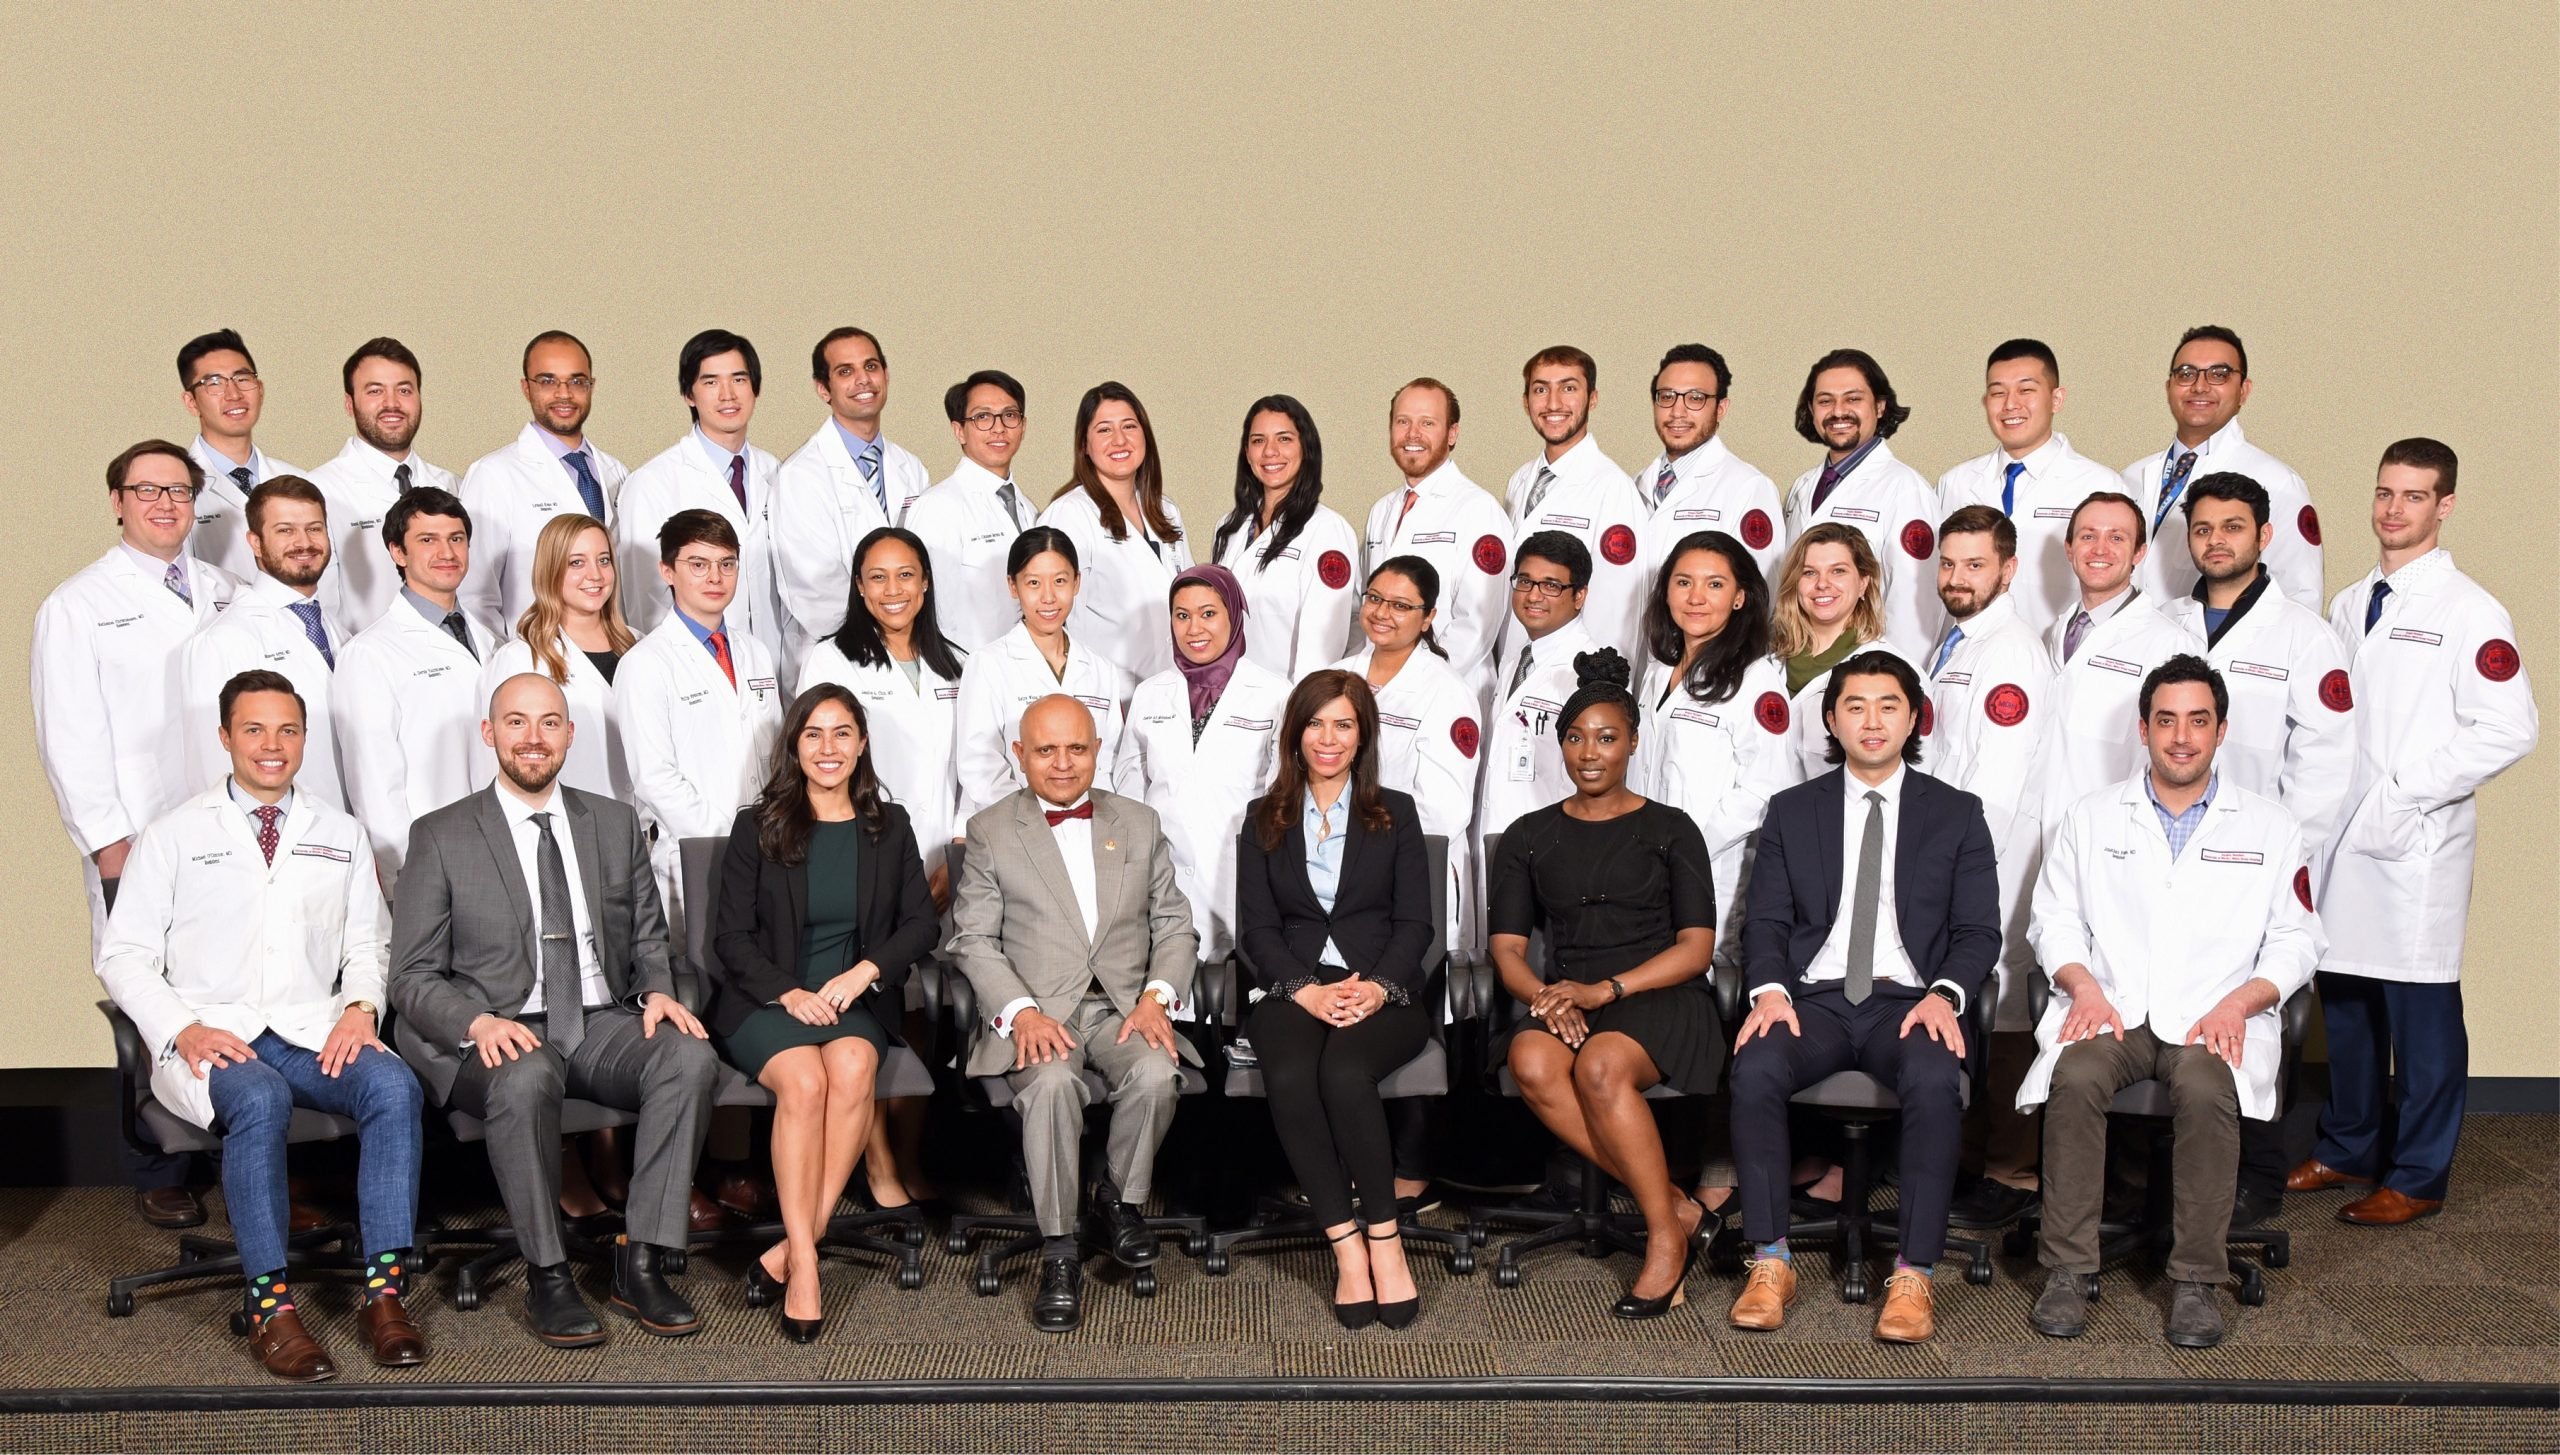 uicmgh_class_picture_2021